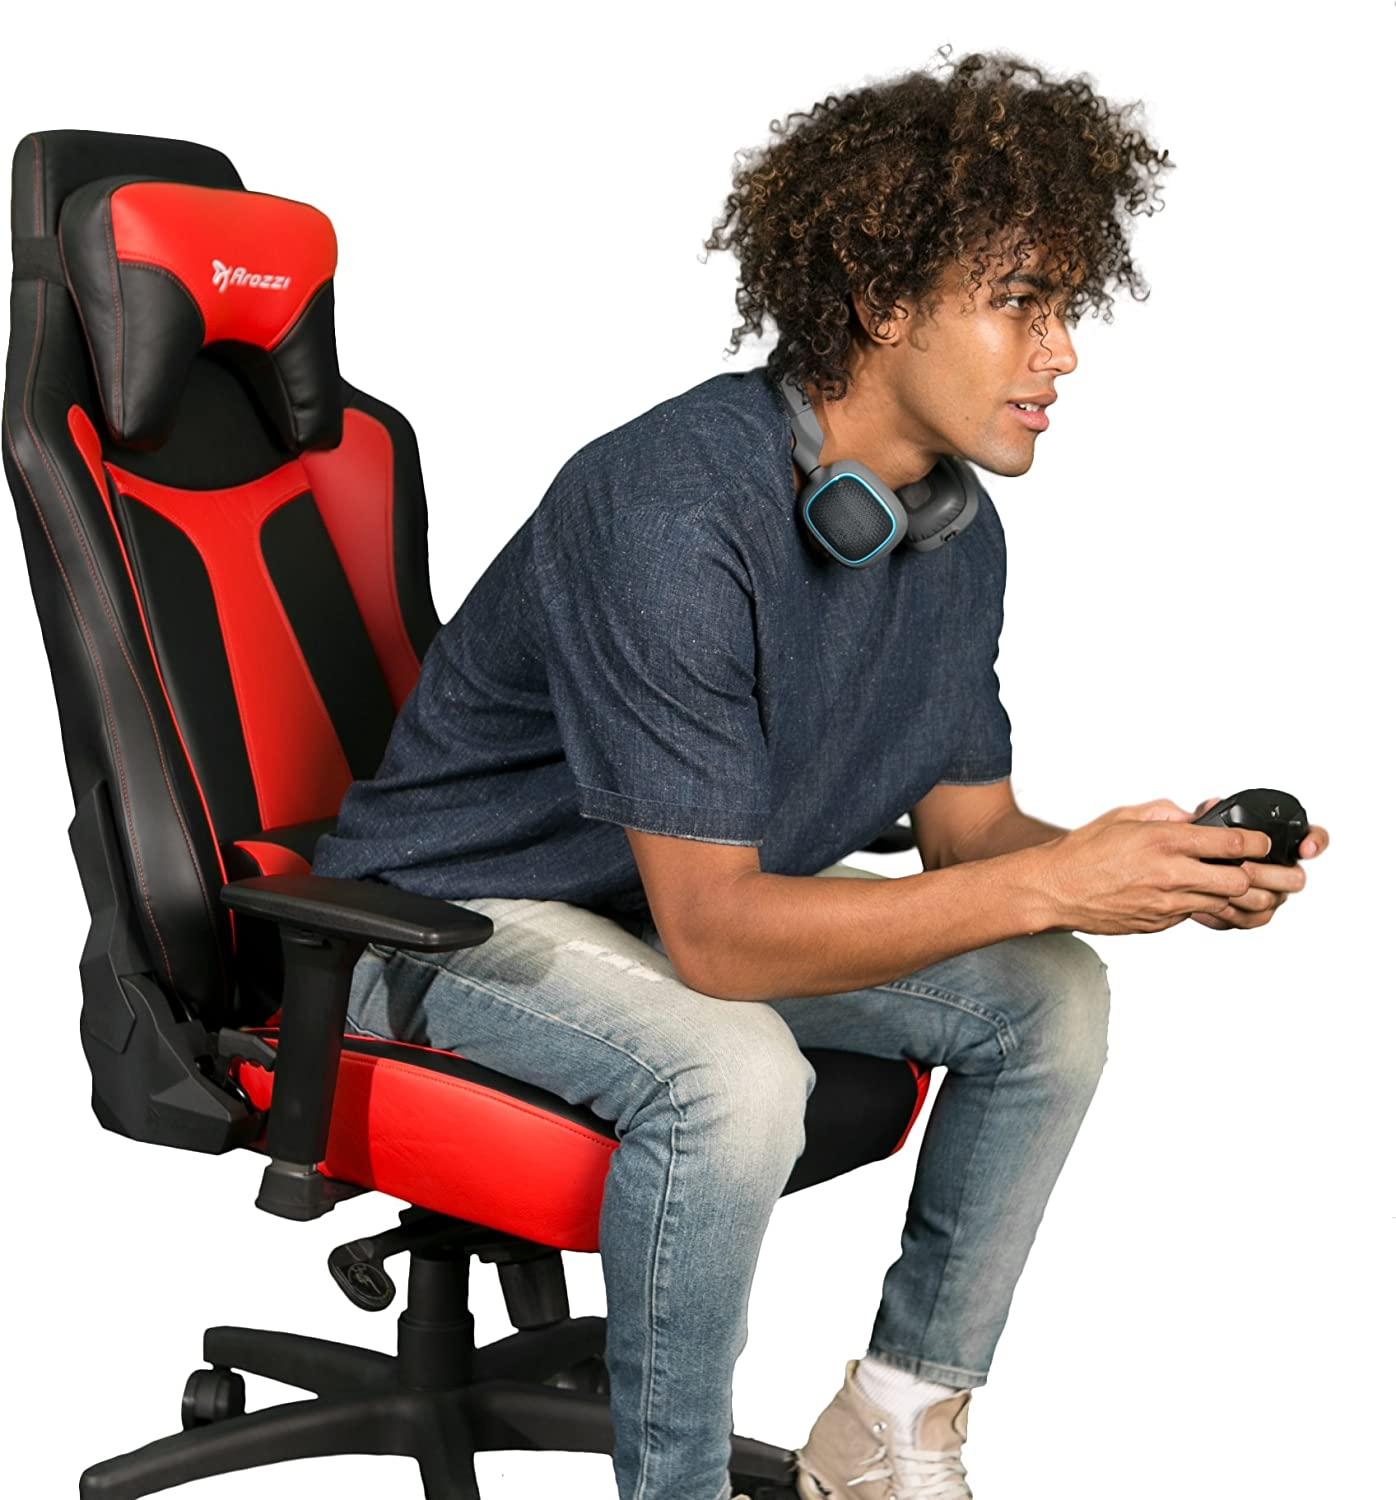 Arozzi Vernazza Series -best Gaming Racing Style Chair